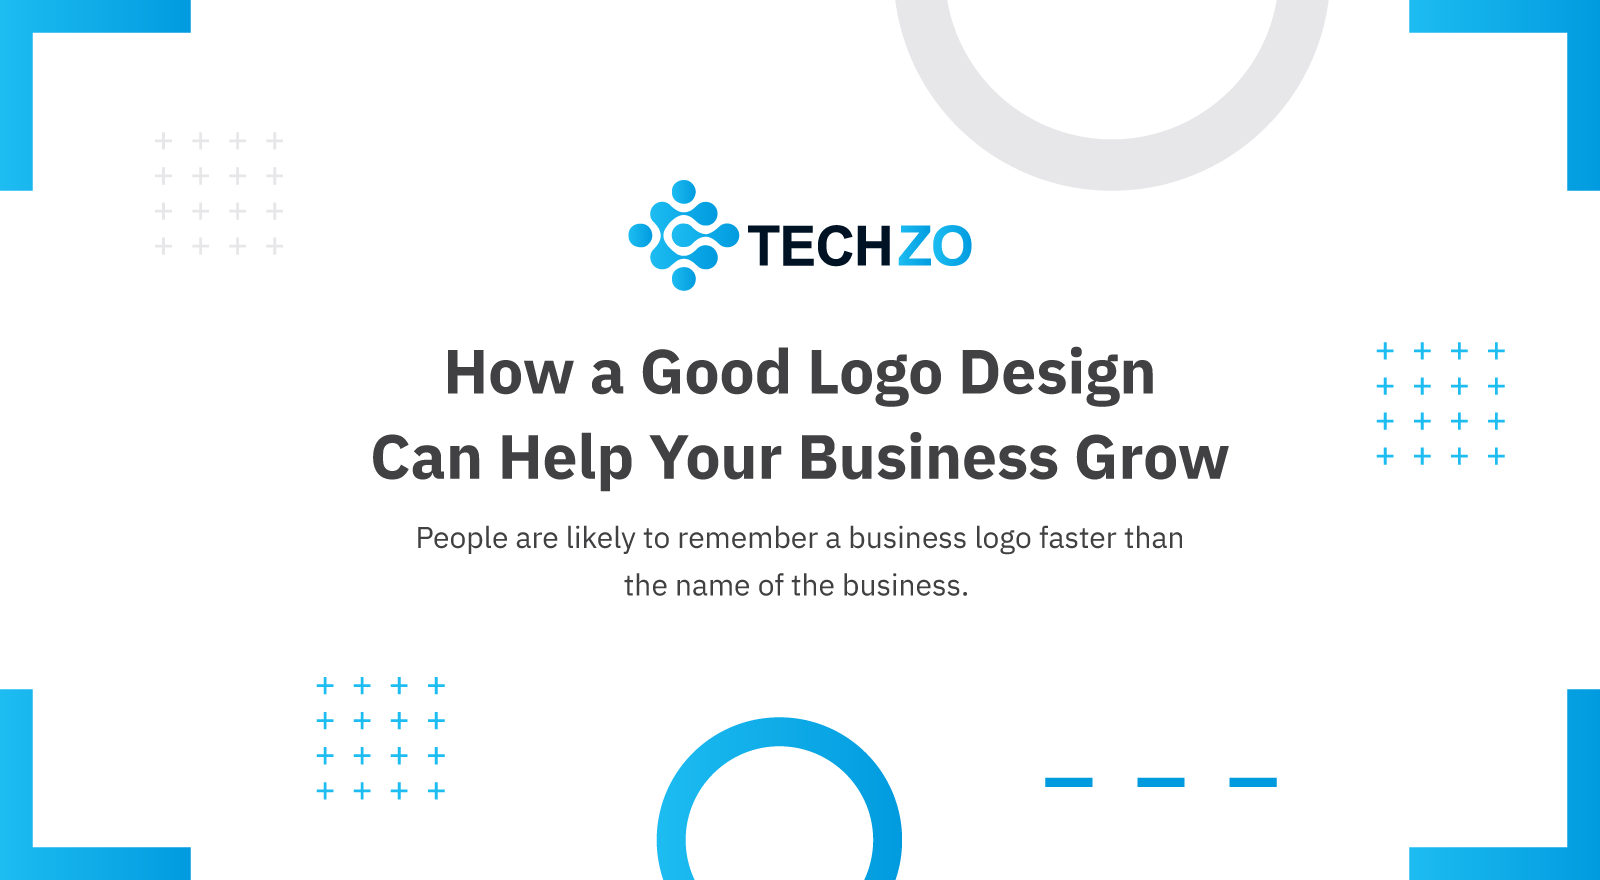 How a Good Logo Design Can Help Your Business Grow